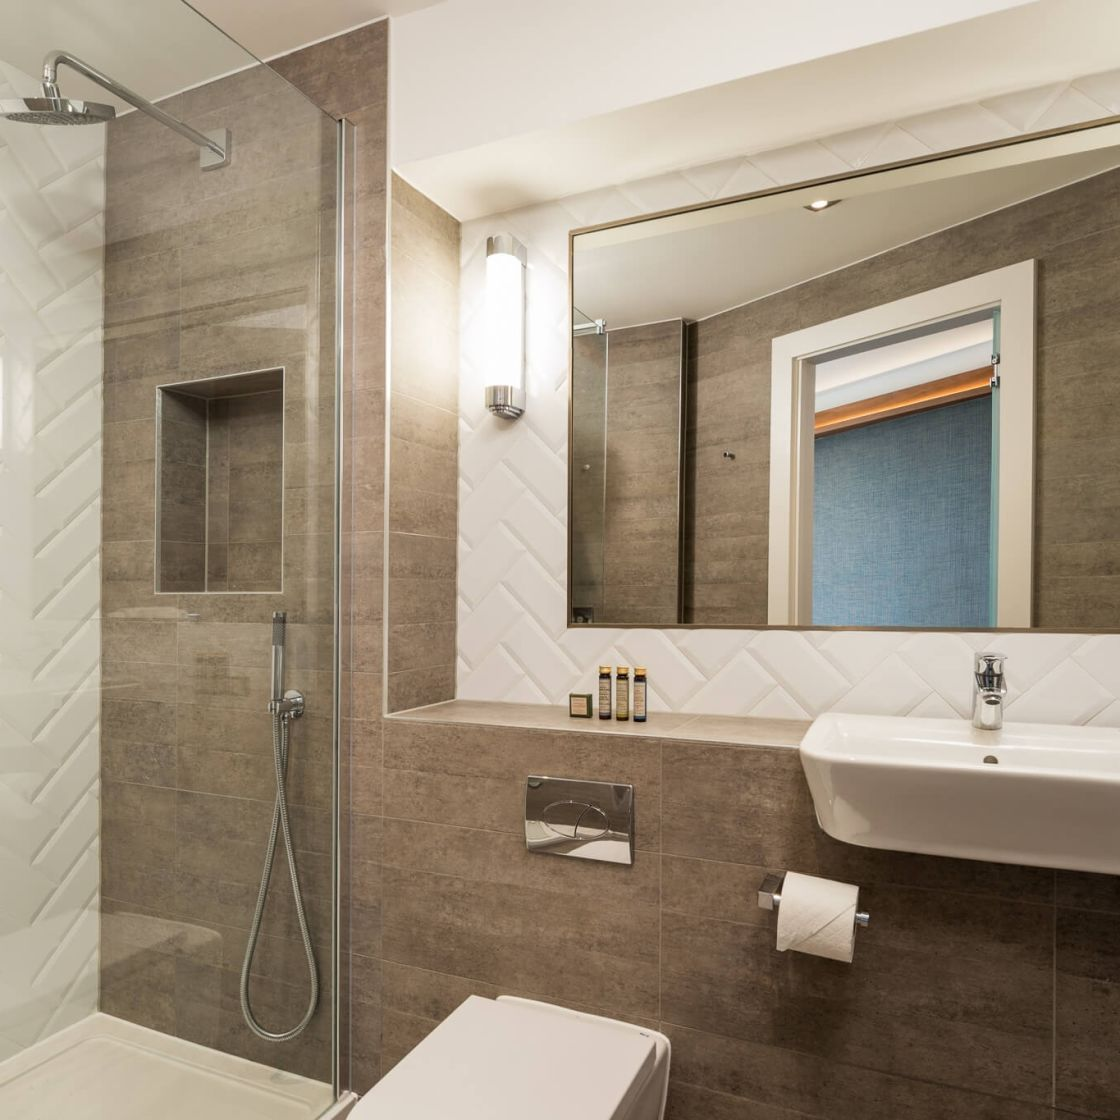 Student Apartment in London. Ensuite Bathroom with power shower. IconInc @ Roomzzz